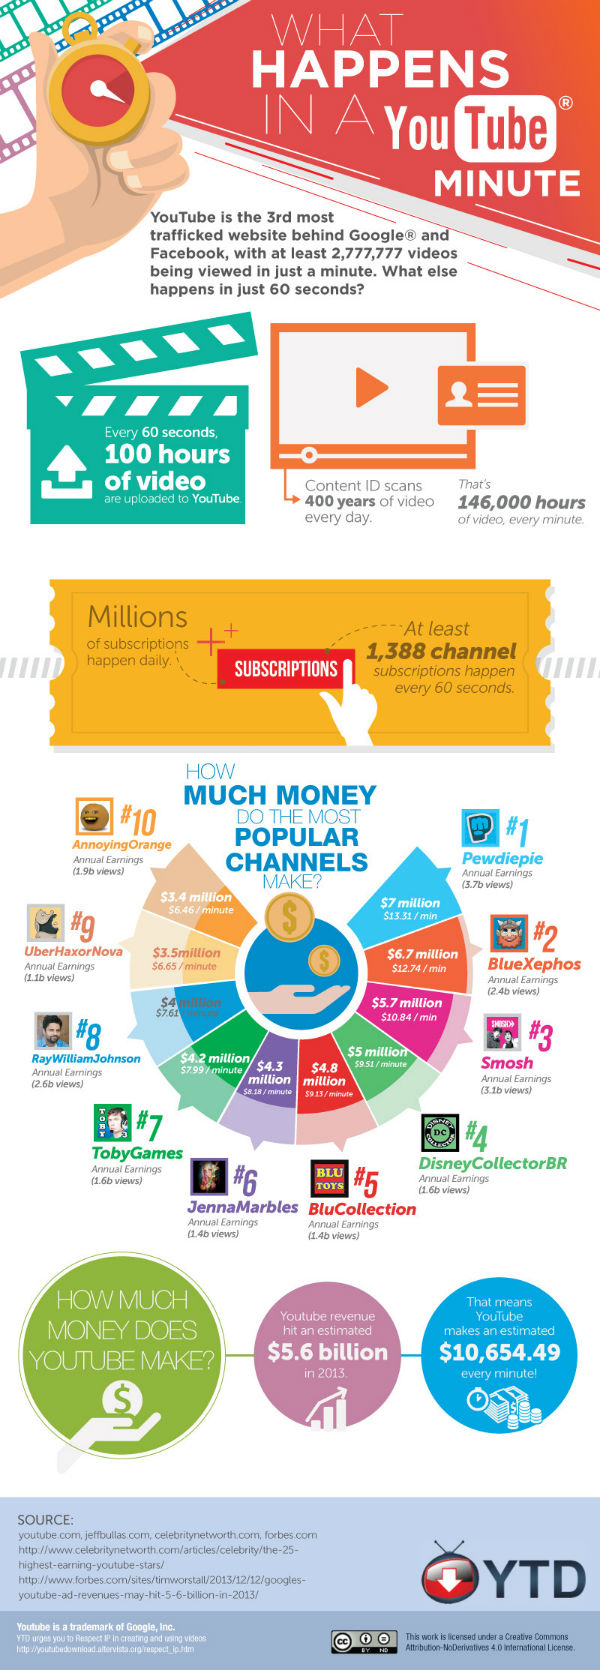 what-happens-in-a-youtube-minute-social-media-facts-infographic